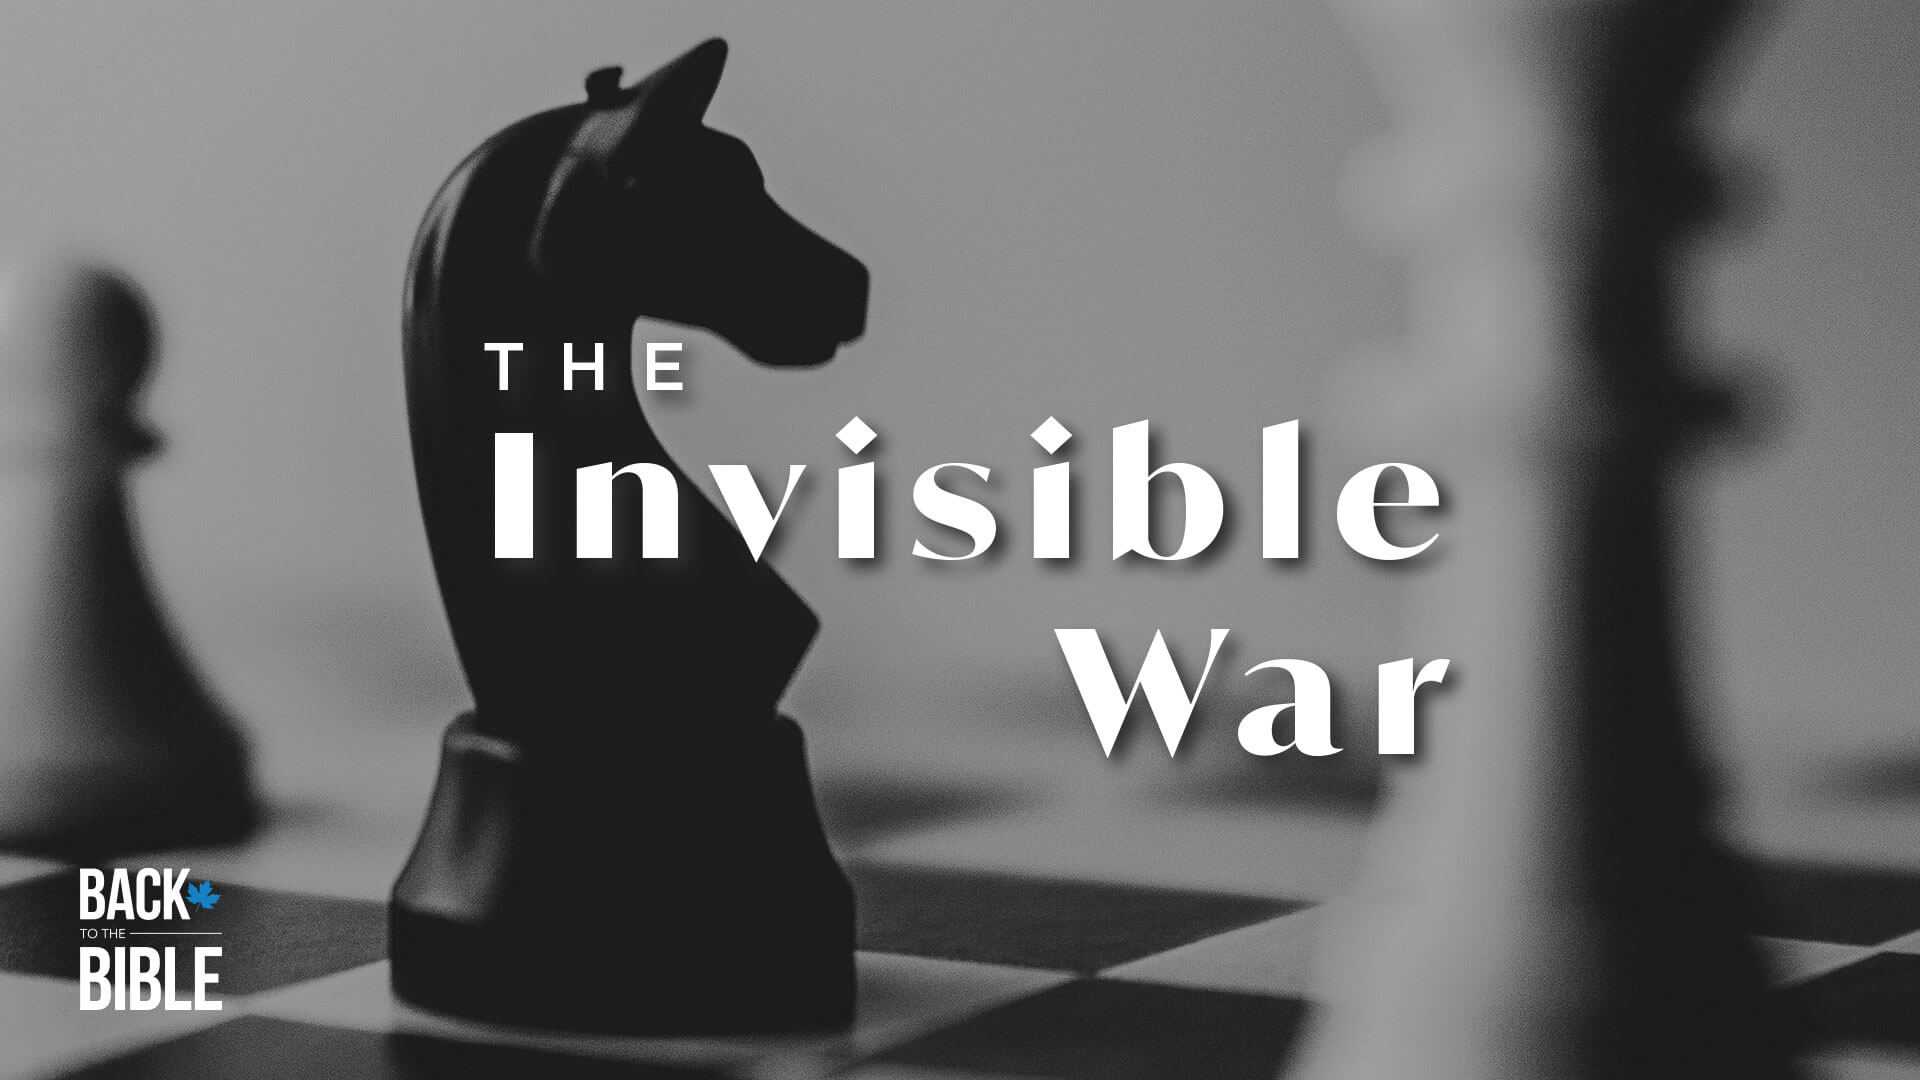 The Invisible War by Dr. John Neufeld | Back to the Bible Canada